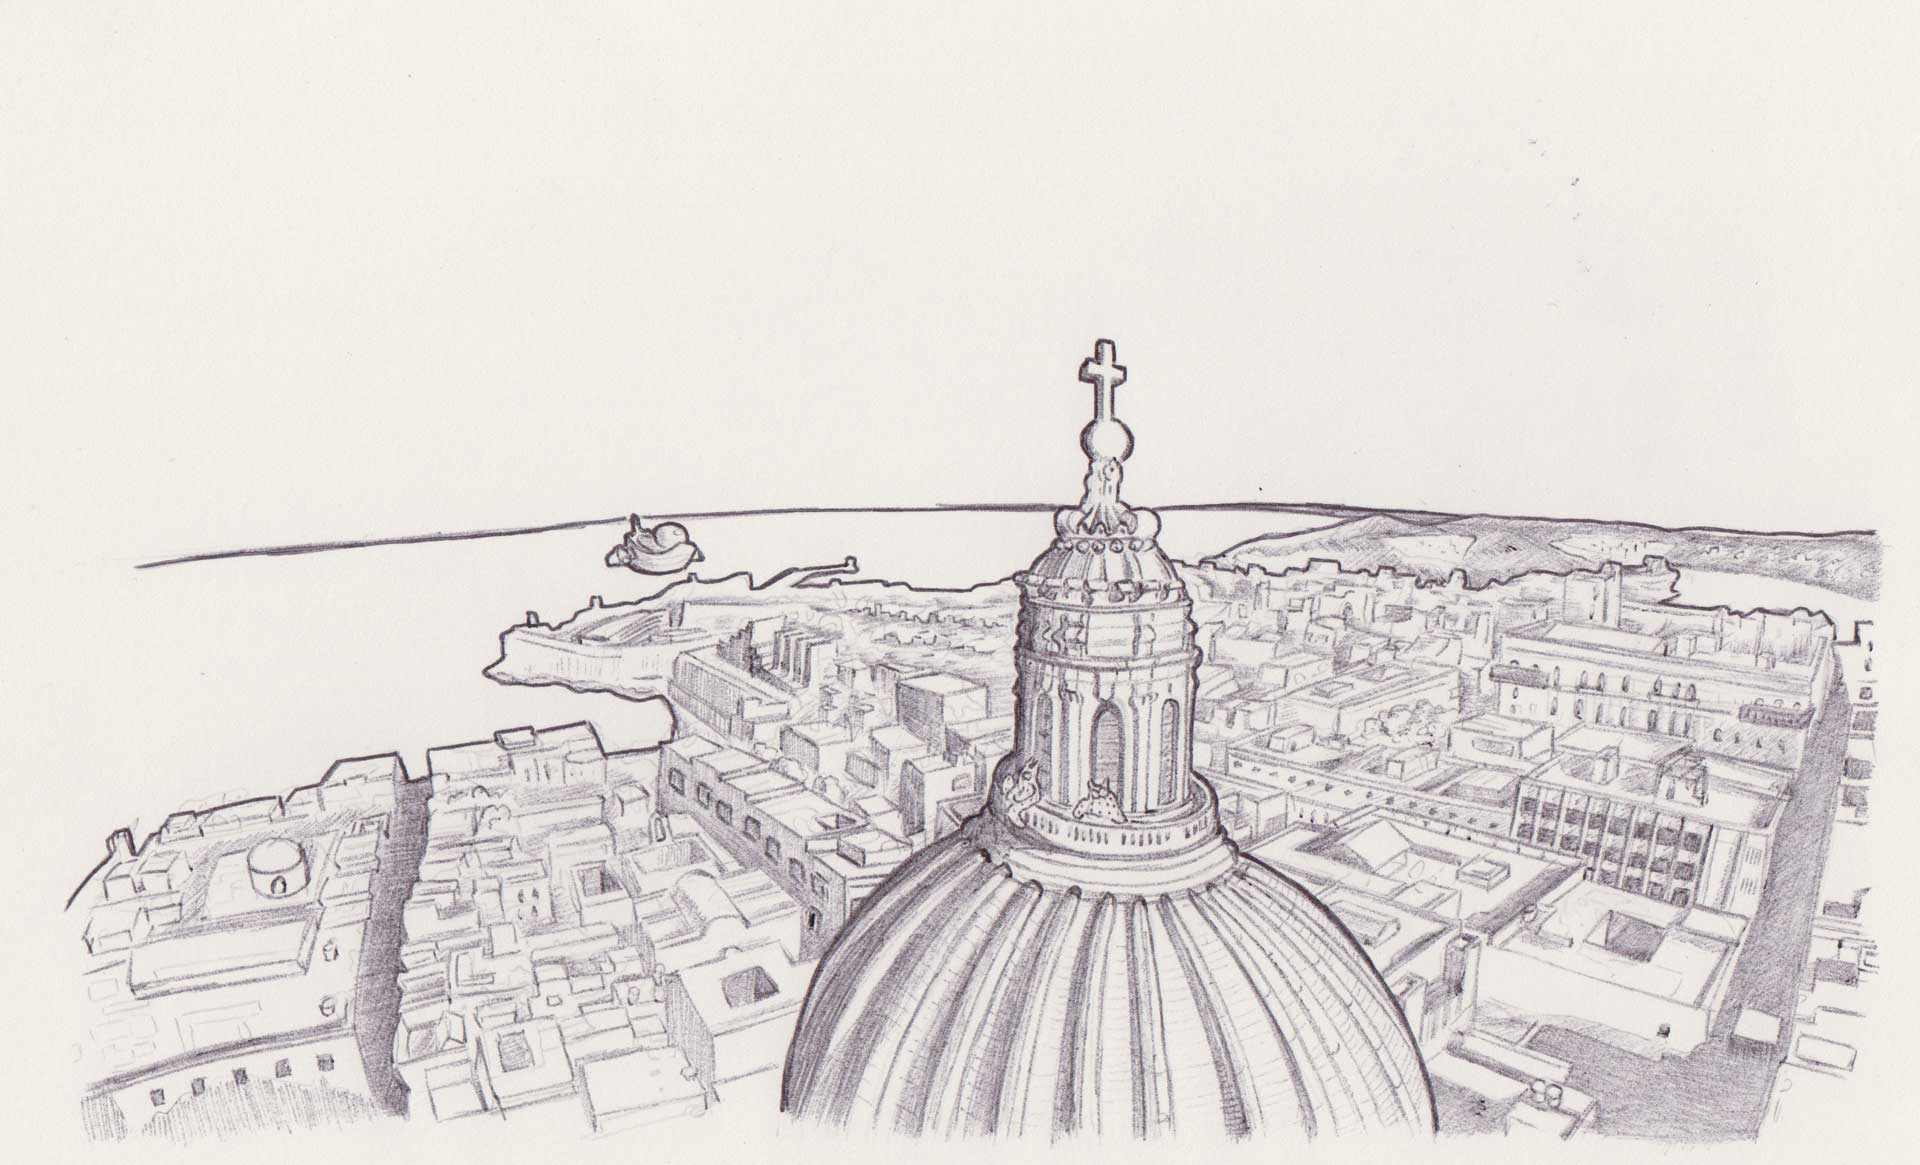 Alien on Valletta roof with space luzzu, Mixed media on paper by Alessandro Bruno